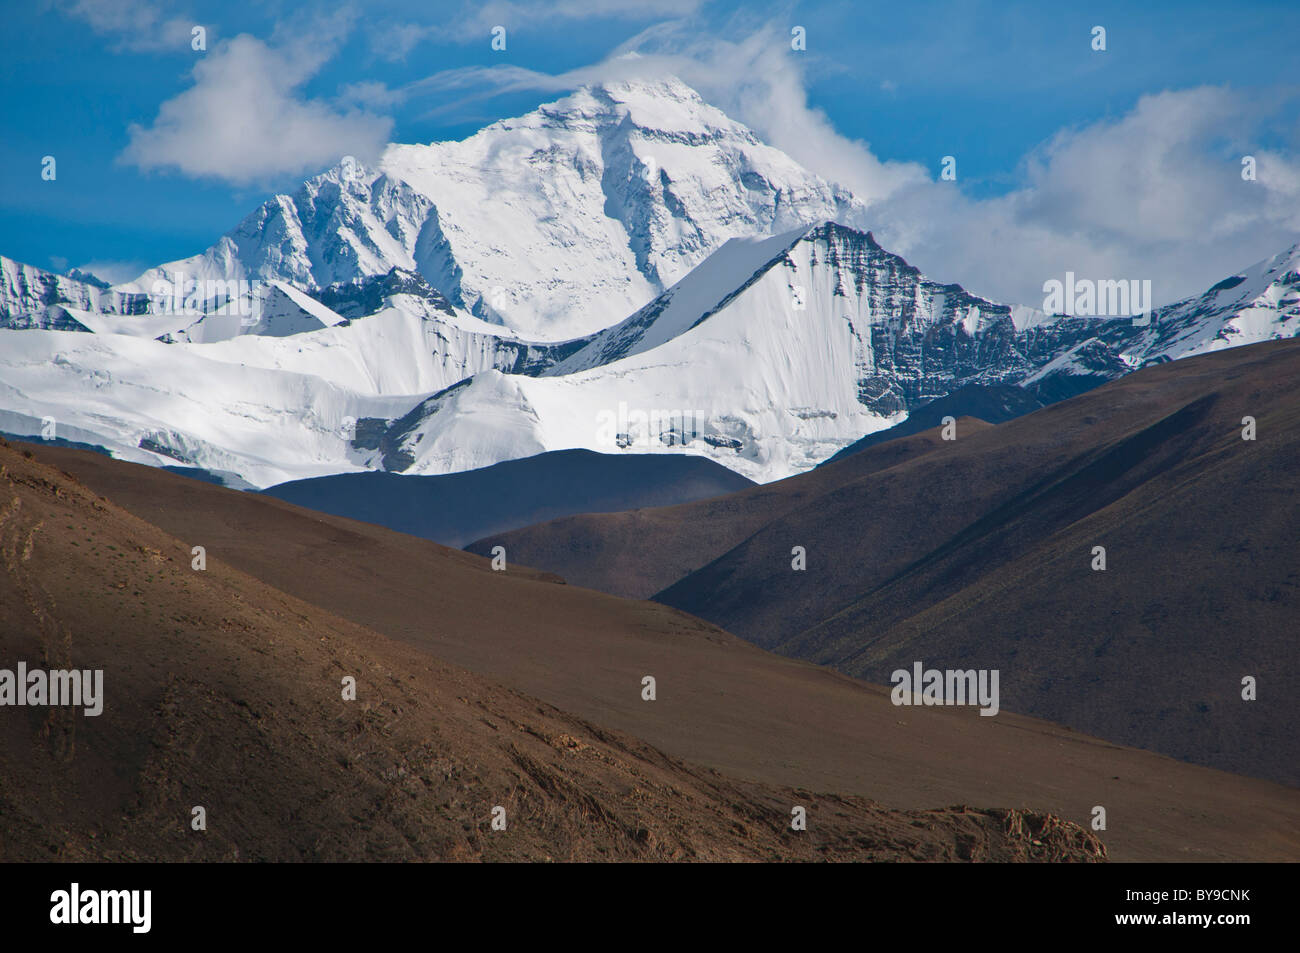 Mount Everest, the highest mountain in the world, Tibet, Central Asia - Stock Image